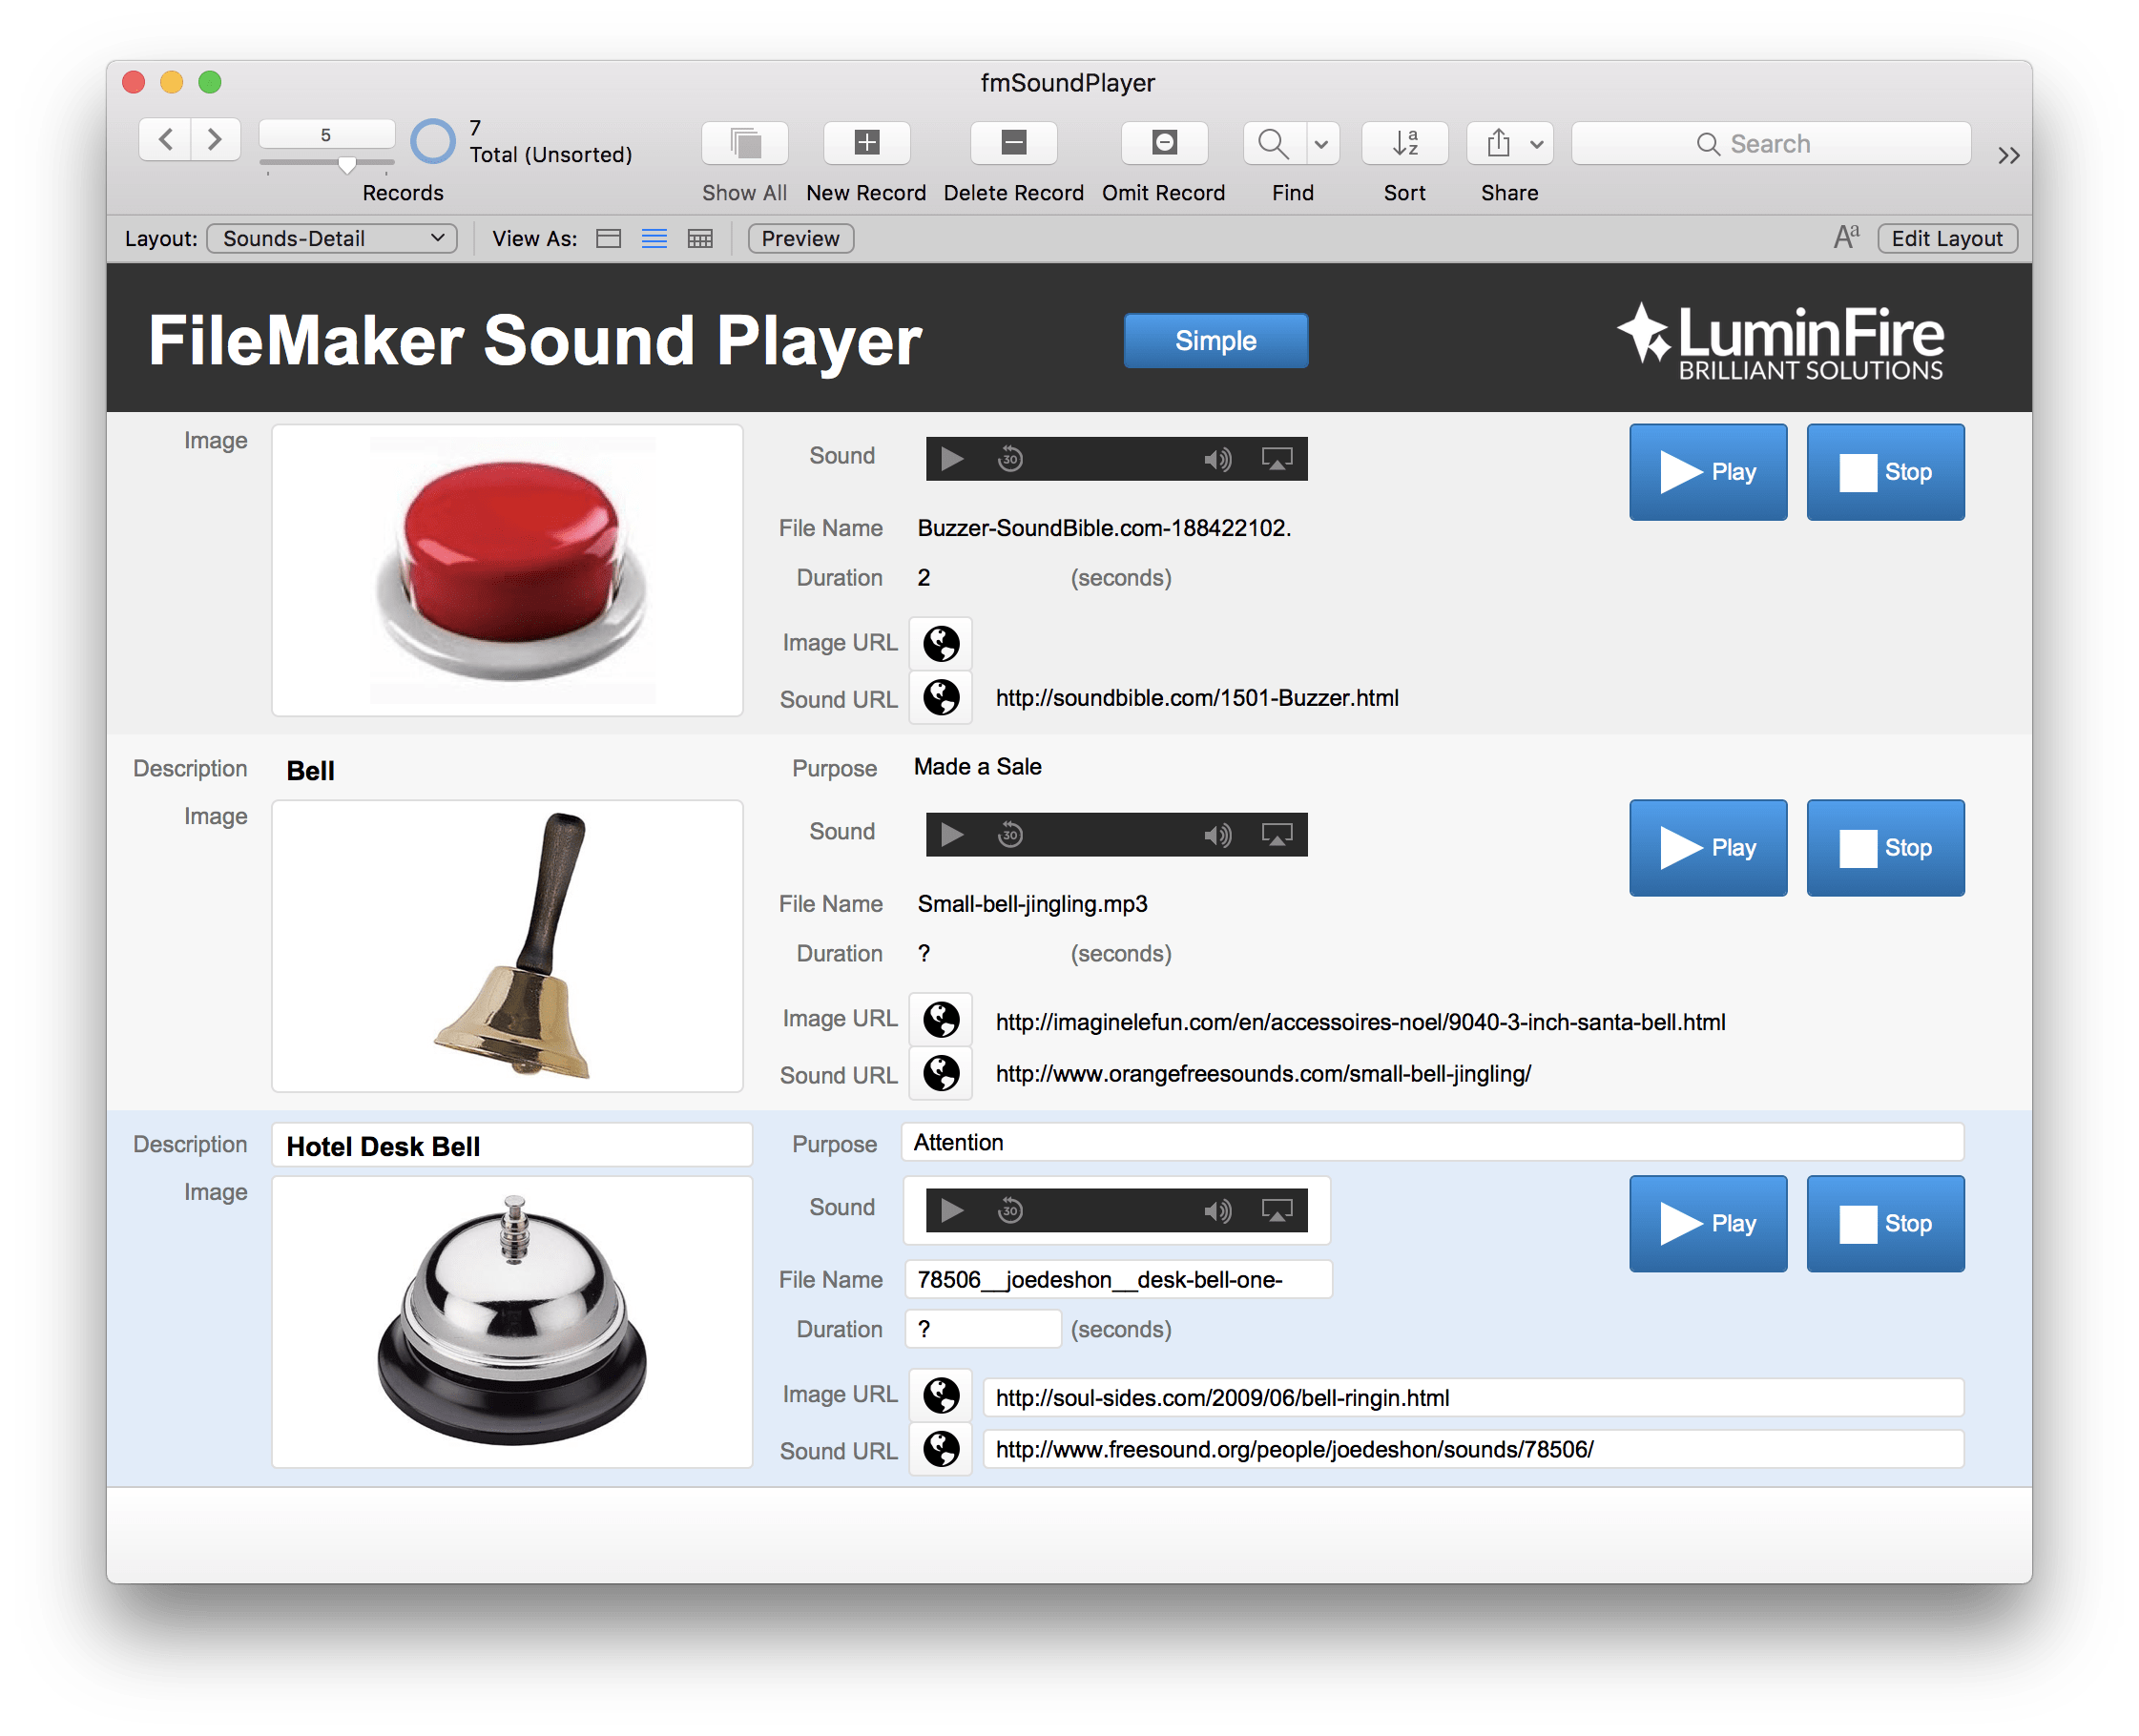 fmSoundPlayer Sound Effects on the Fly with FileMaker 6